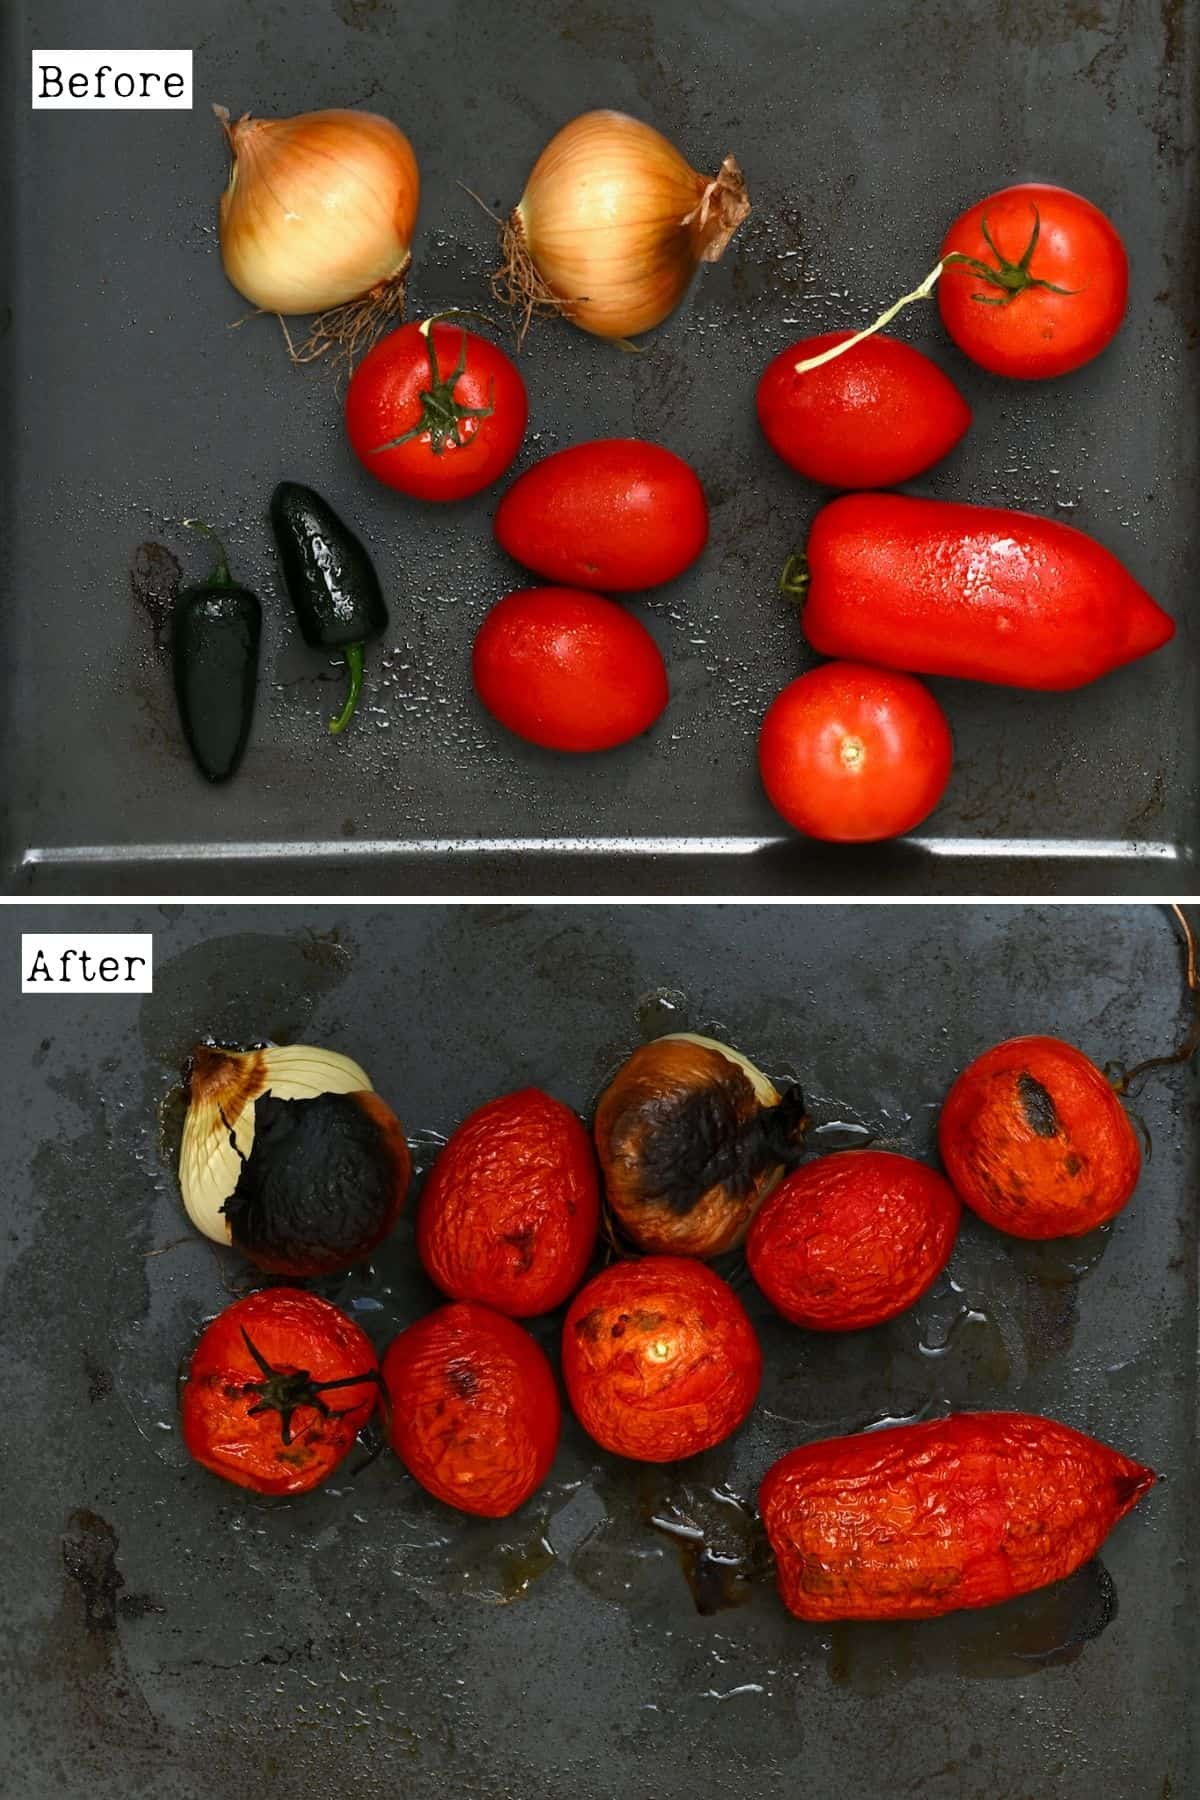 Before and after roasting tomatoes, onions and chili peppers